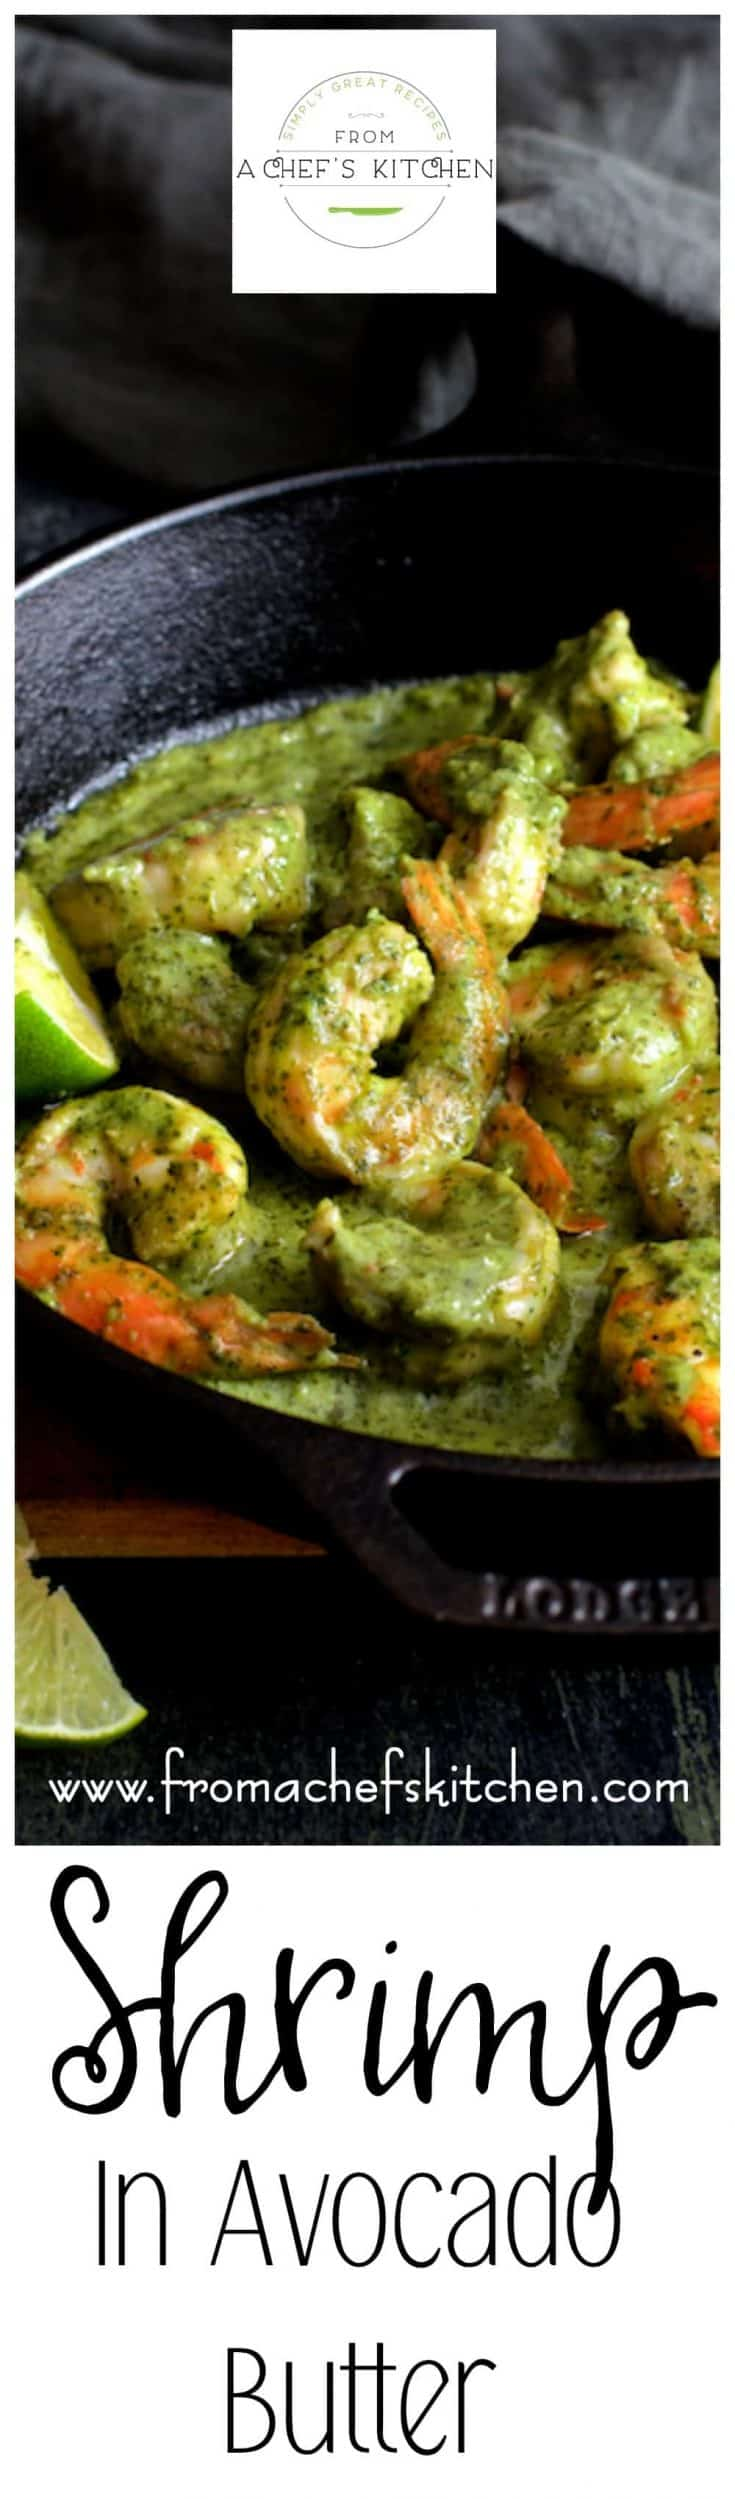 Limey, buttery and easy, Shrimp in Avocado Butter makes a luxurious appetizer, tapas or delicious, indulgent dinner! #shrimp #avocado #butter #tapas #appetizer